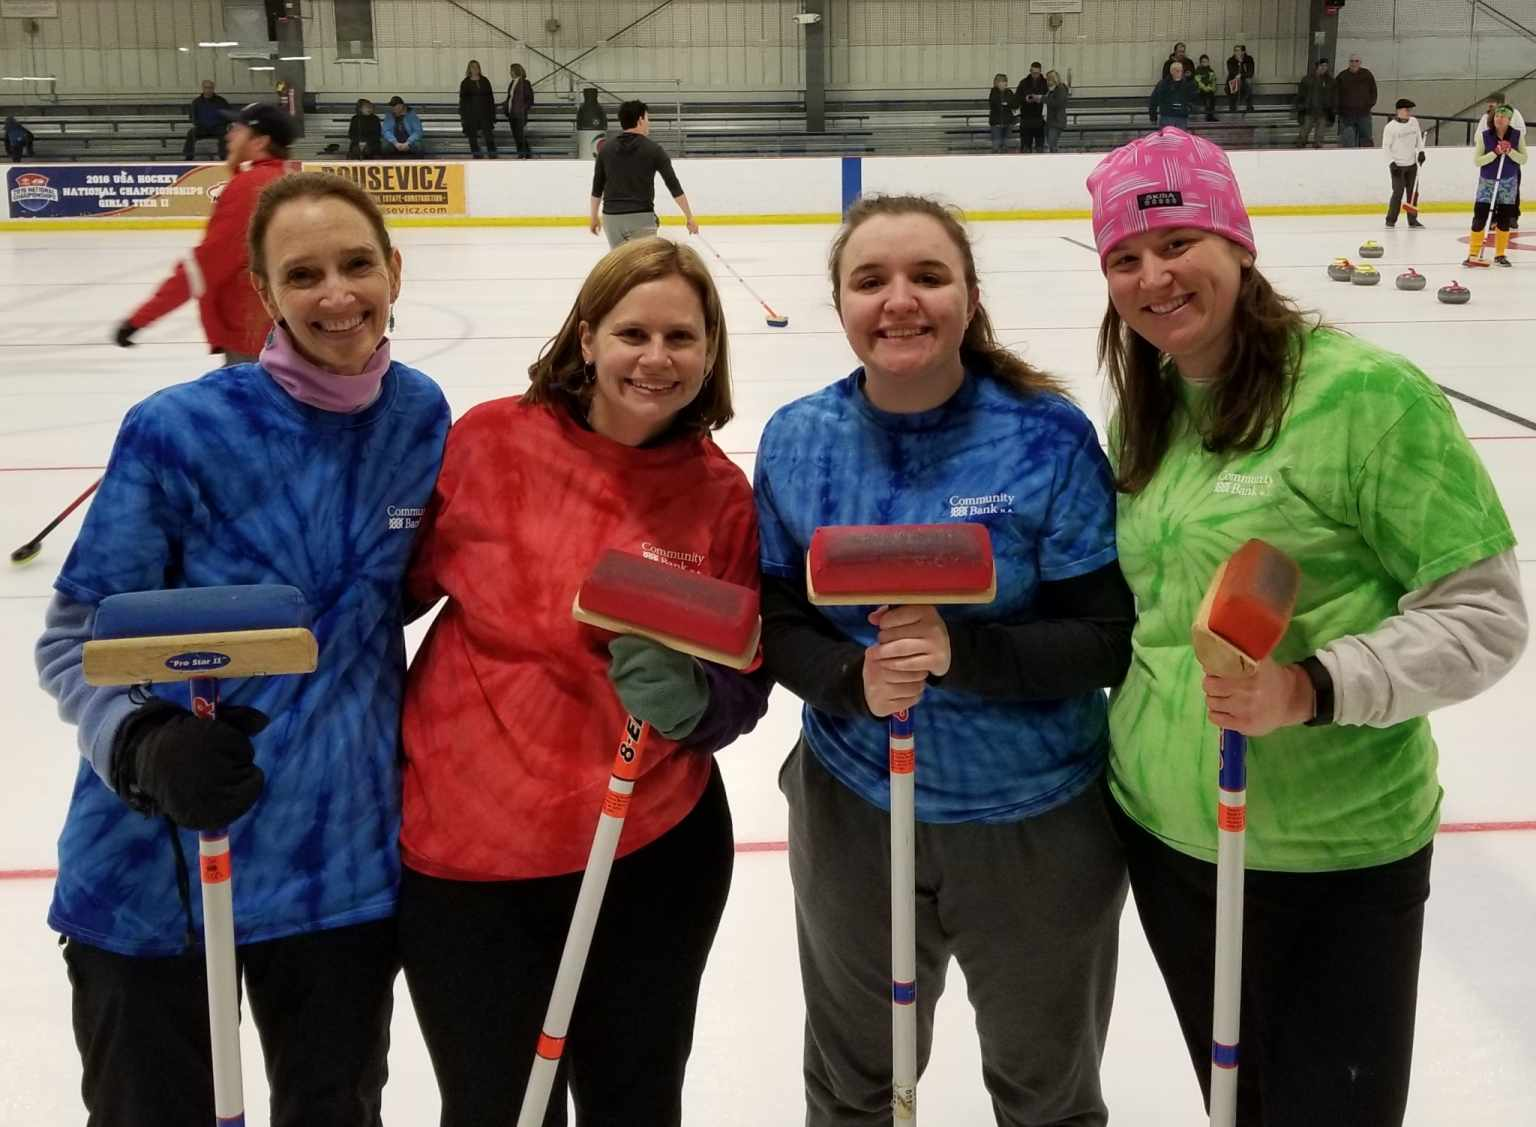 Women Standing With Curling Brooms